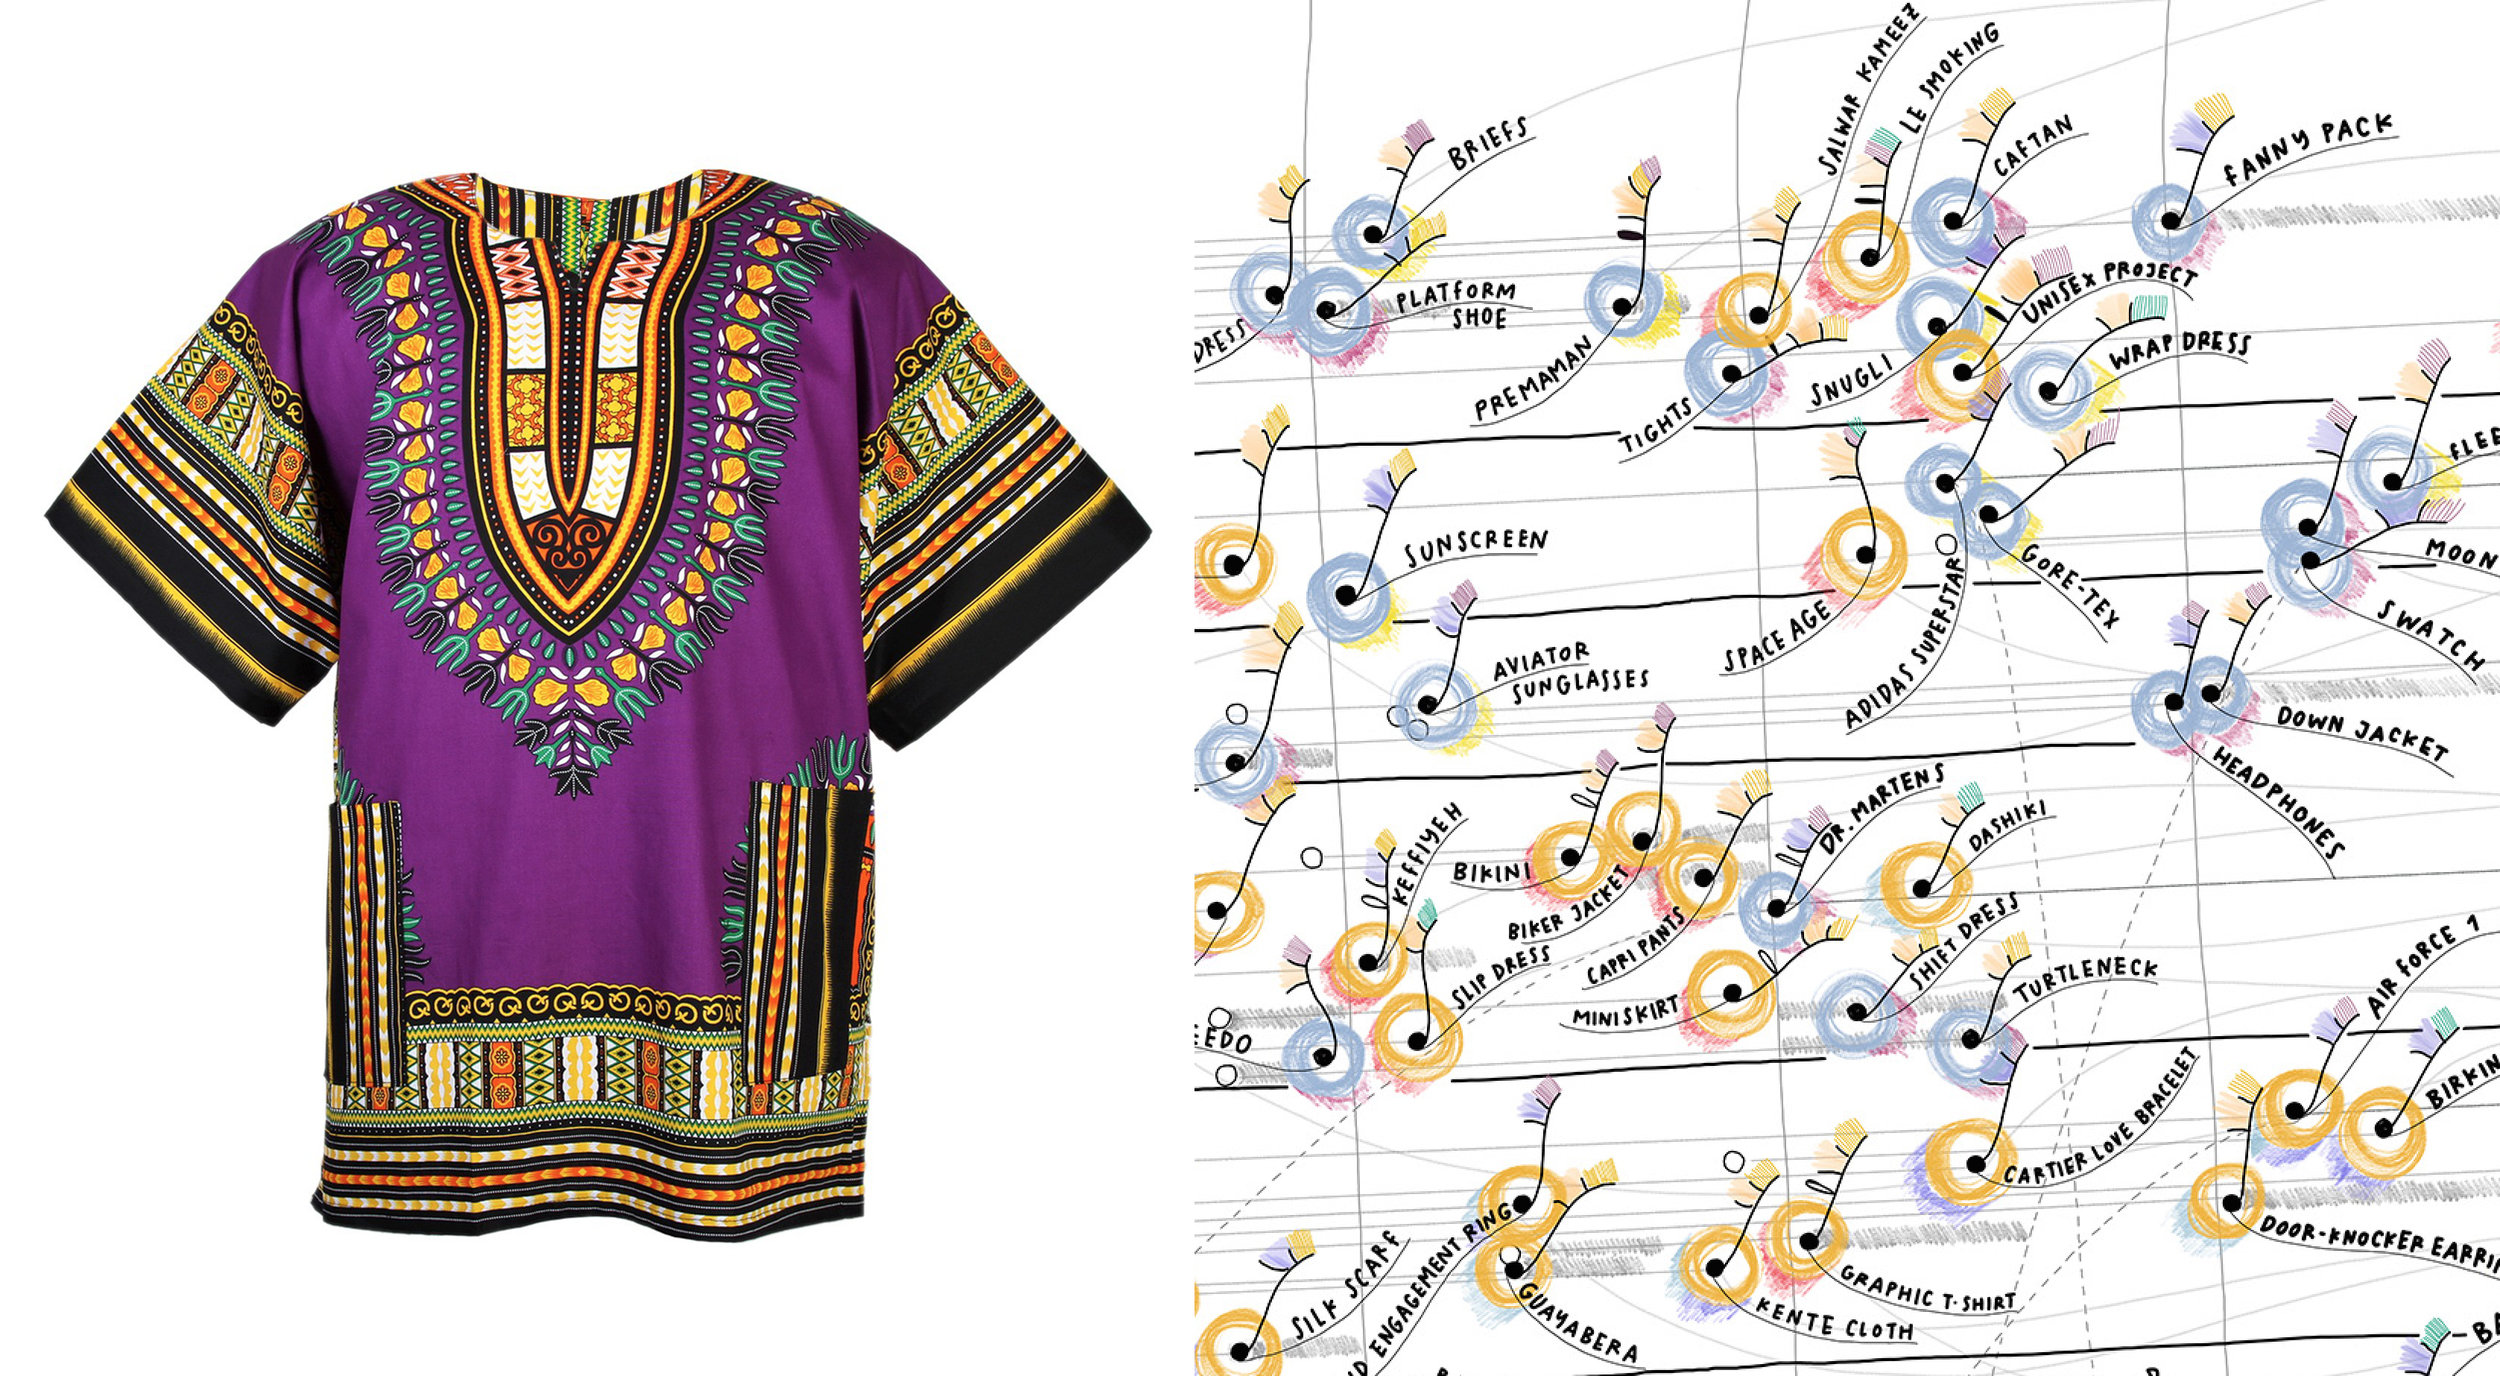 """Did you know that the Dashiki is not a traditional West African garment but it is instead a mass-produced modern garment that emerged in New York City in the '60s? As the exhibition text highlights, """"borne in 1967 out of the vision of young urban professionals Jason and Mabel Benning, shoe designer Howard Davis, and a handful of their friends who started the brand """"New Breed Clothing"""" in Harlem, the Dashiki provided the sartorial backdrop for the natural Afros and raised fists of the Black Power movement in the 1960s and early 1970s. Benning and Davis believed their mission was """"to uplift the black man by working toward economic independence and developing pride in his heritage."""""""